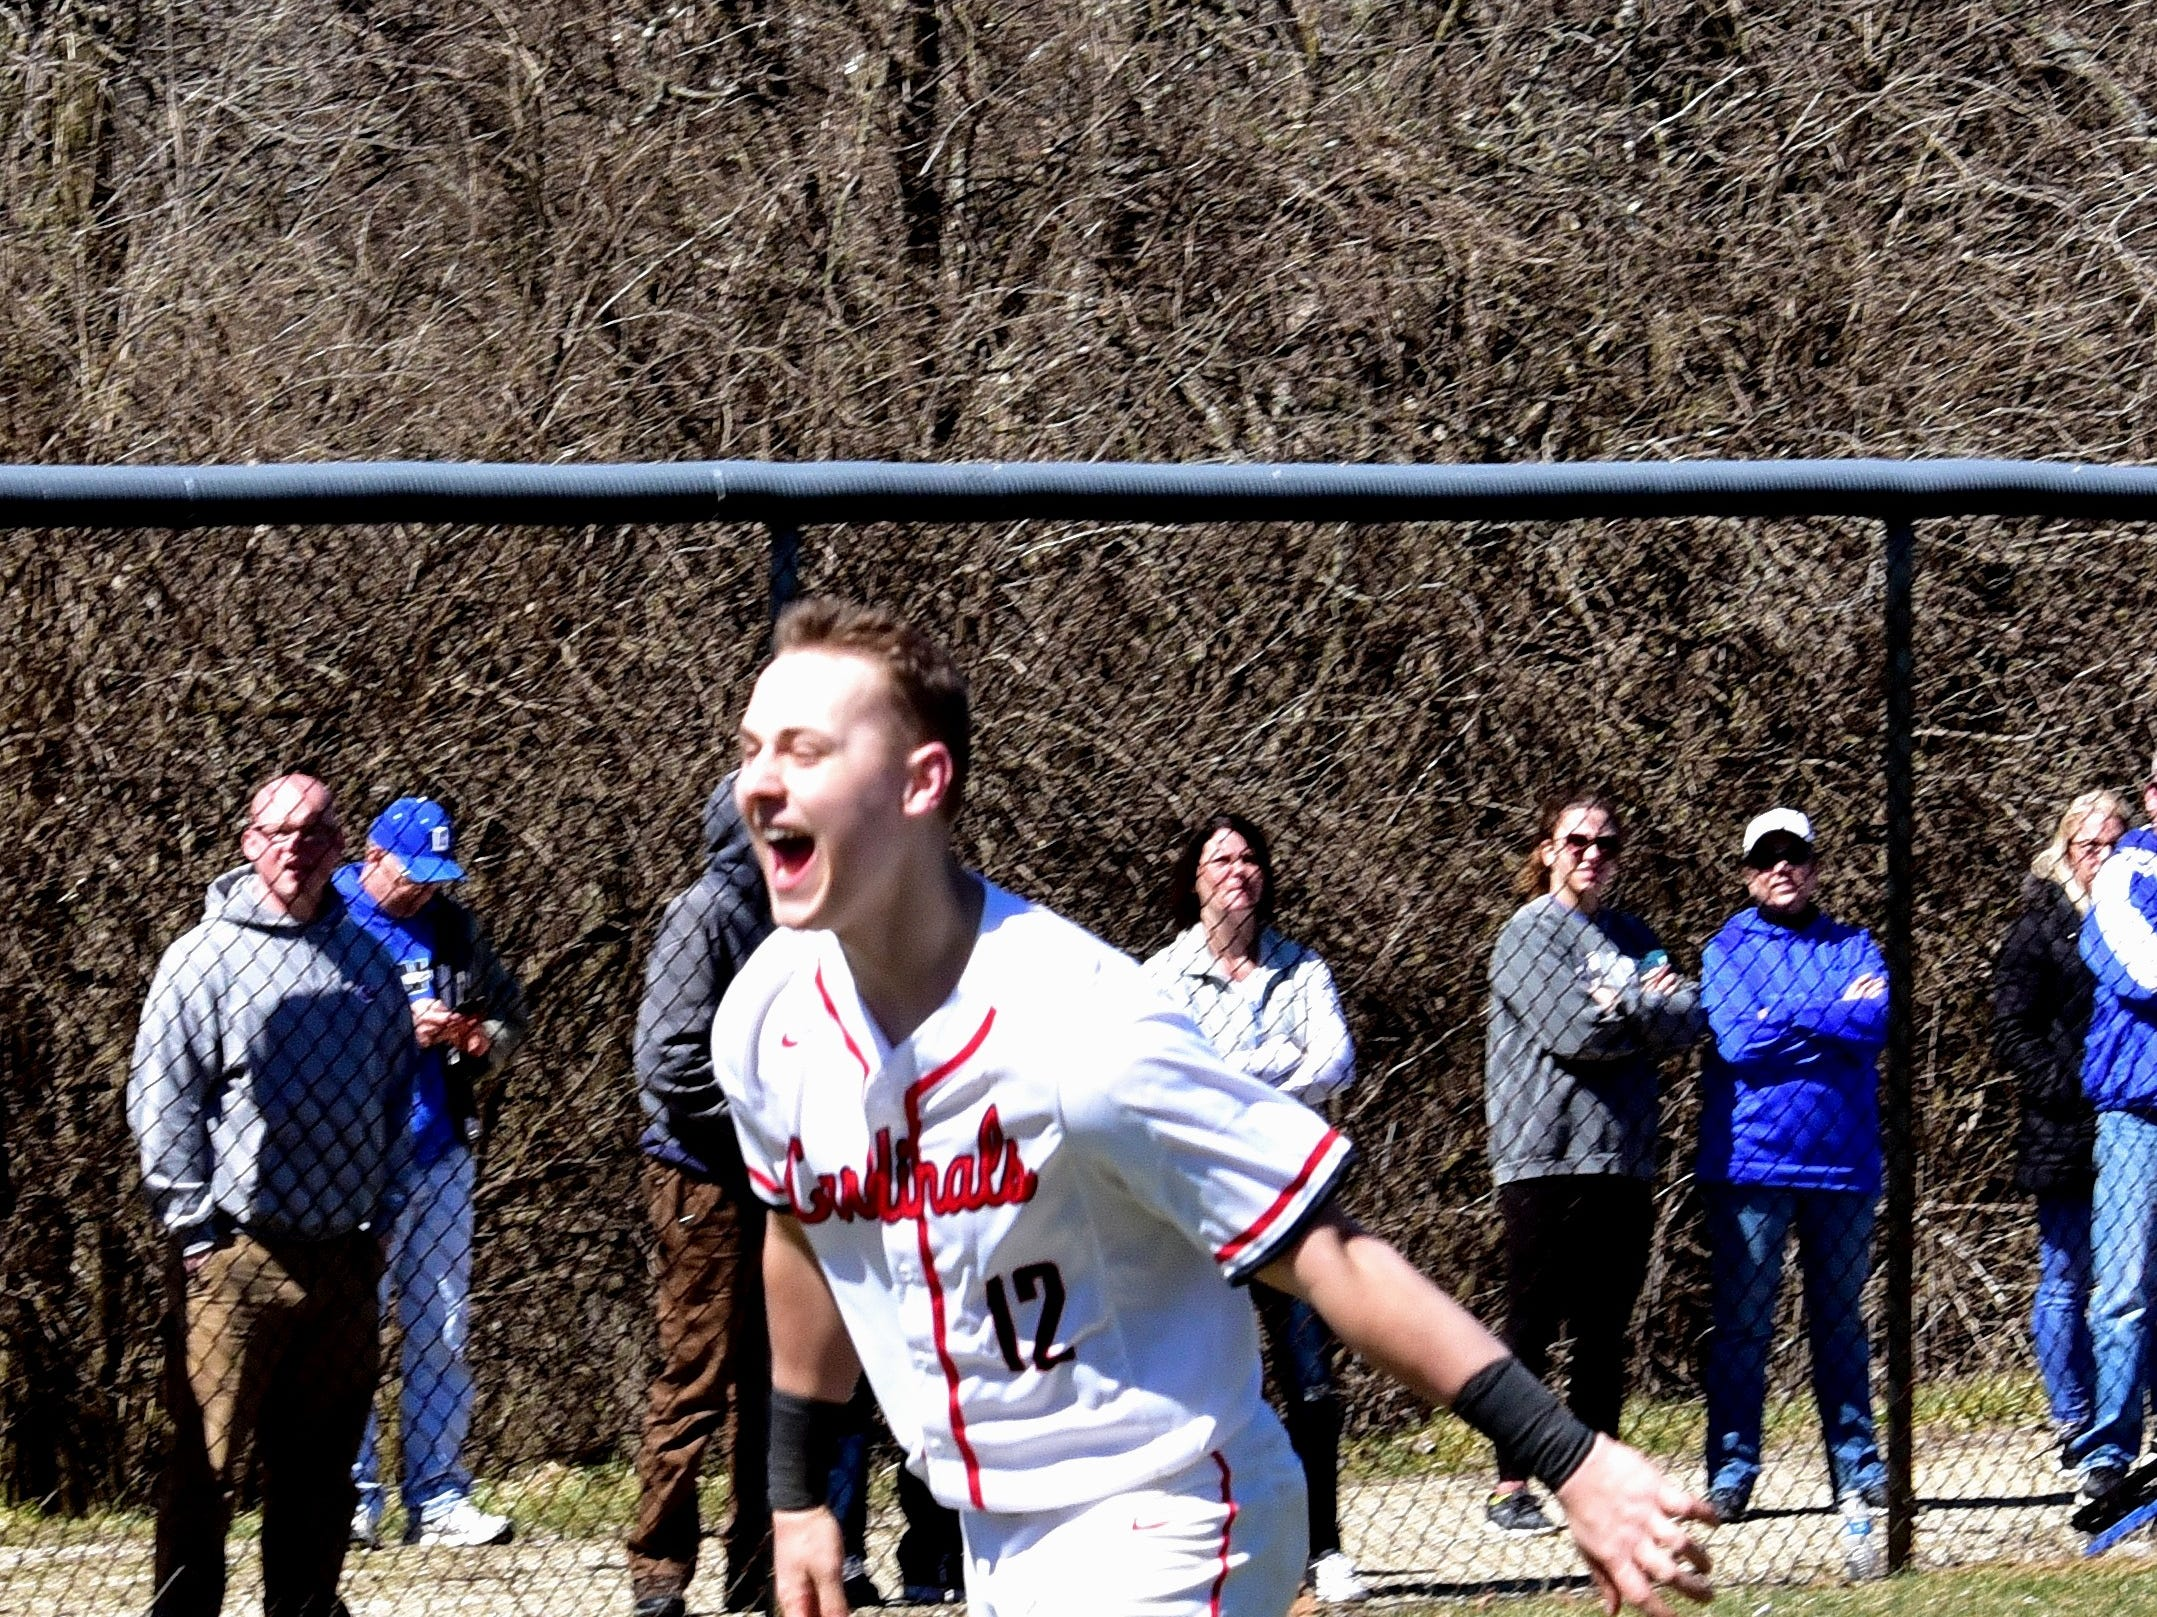 Colerain's Luke Murray is all smiles as he rounds third and heads to home after his game-winning walk-off home run at Colerain High School, March 23, 2019.